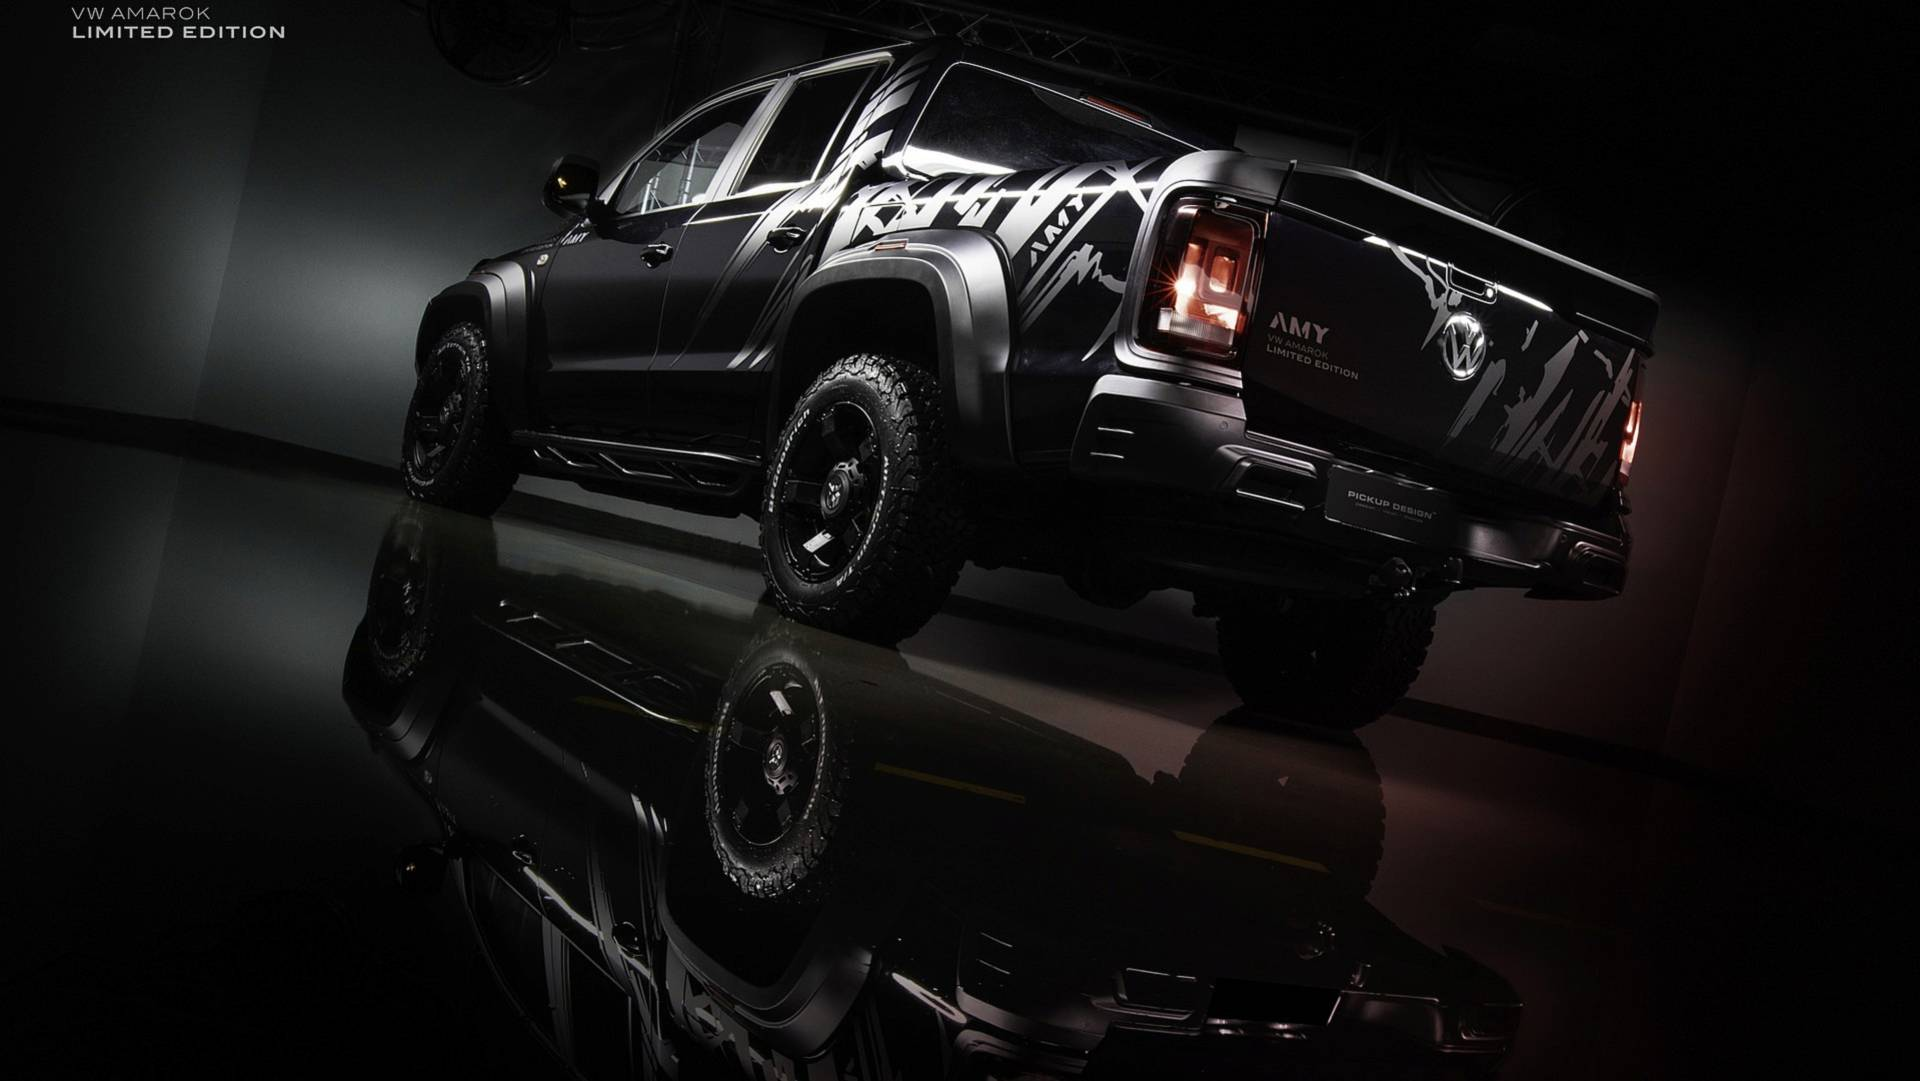 Volkswagen Amarok Amy by Carlex Design (9)